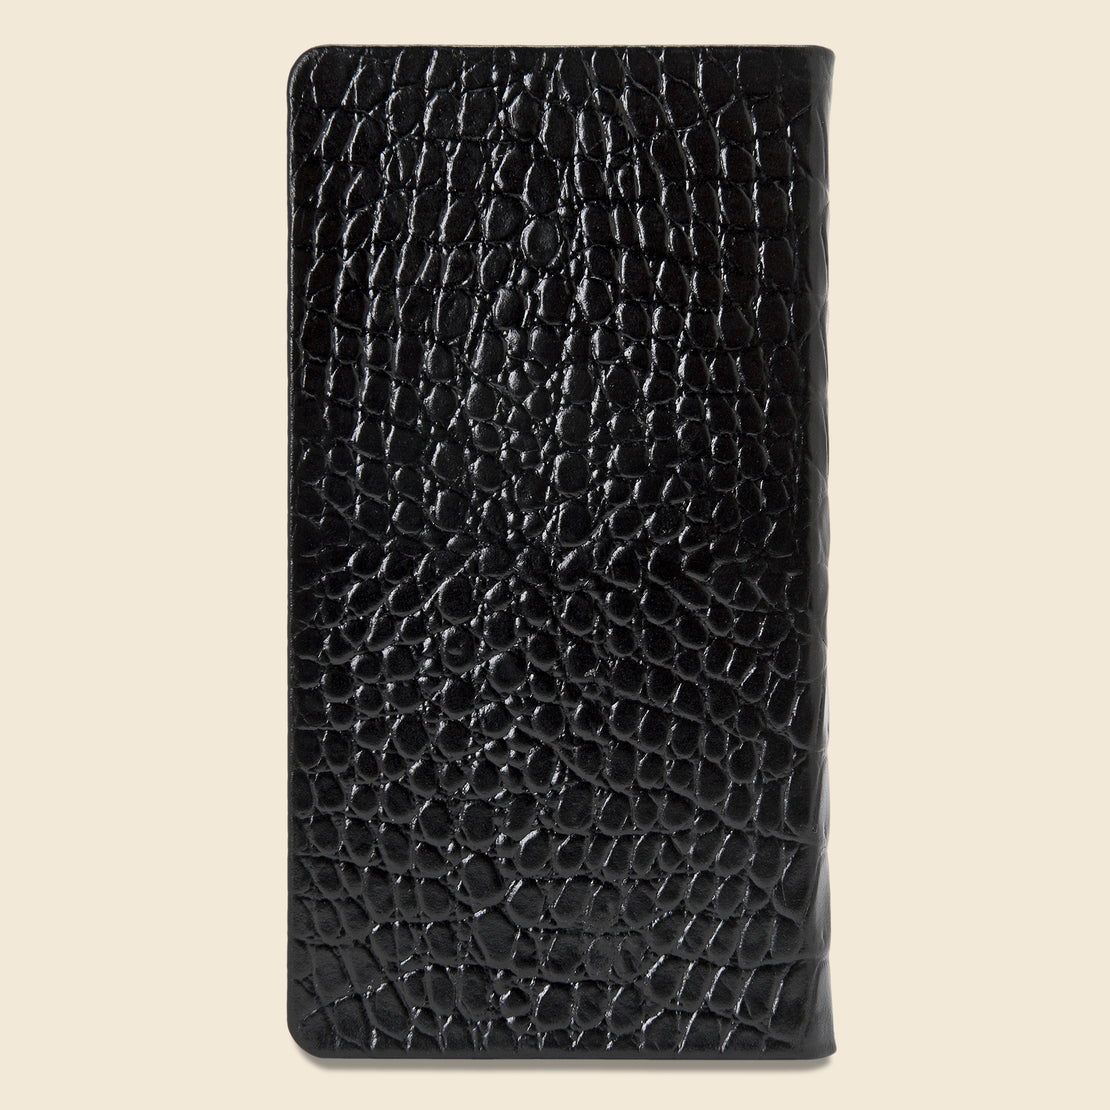 2021 Embossed Leather Pocket Datebook - Black Crocodile